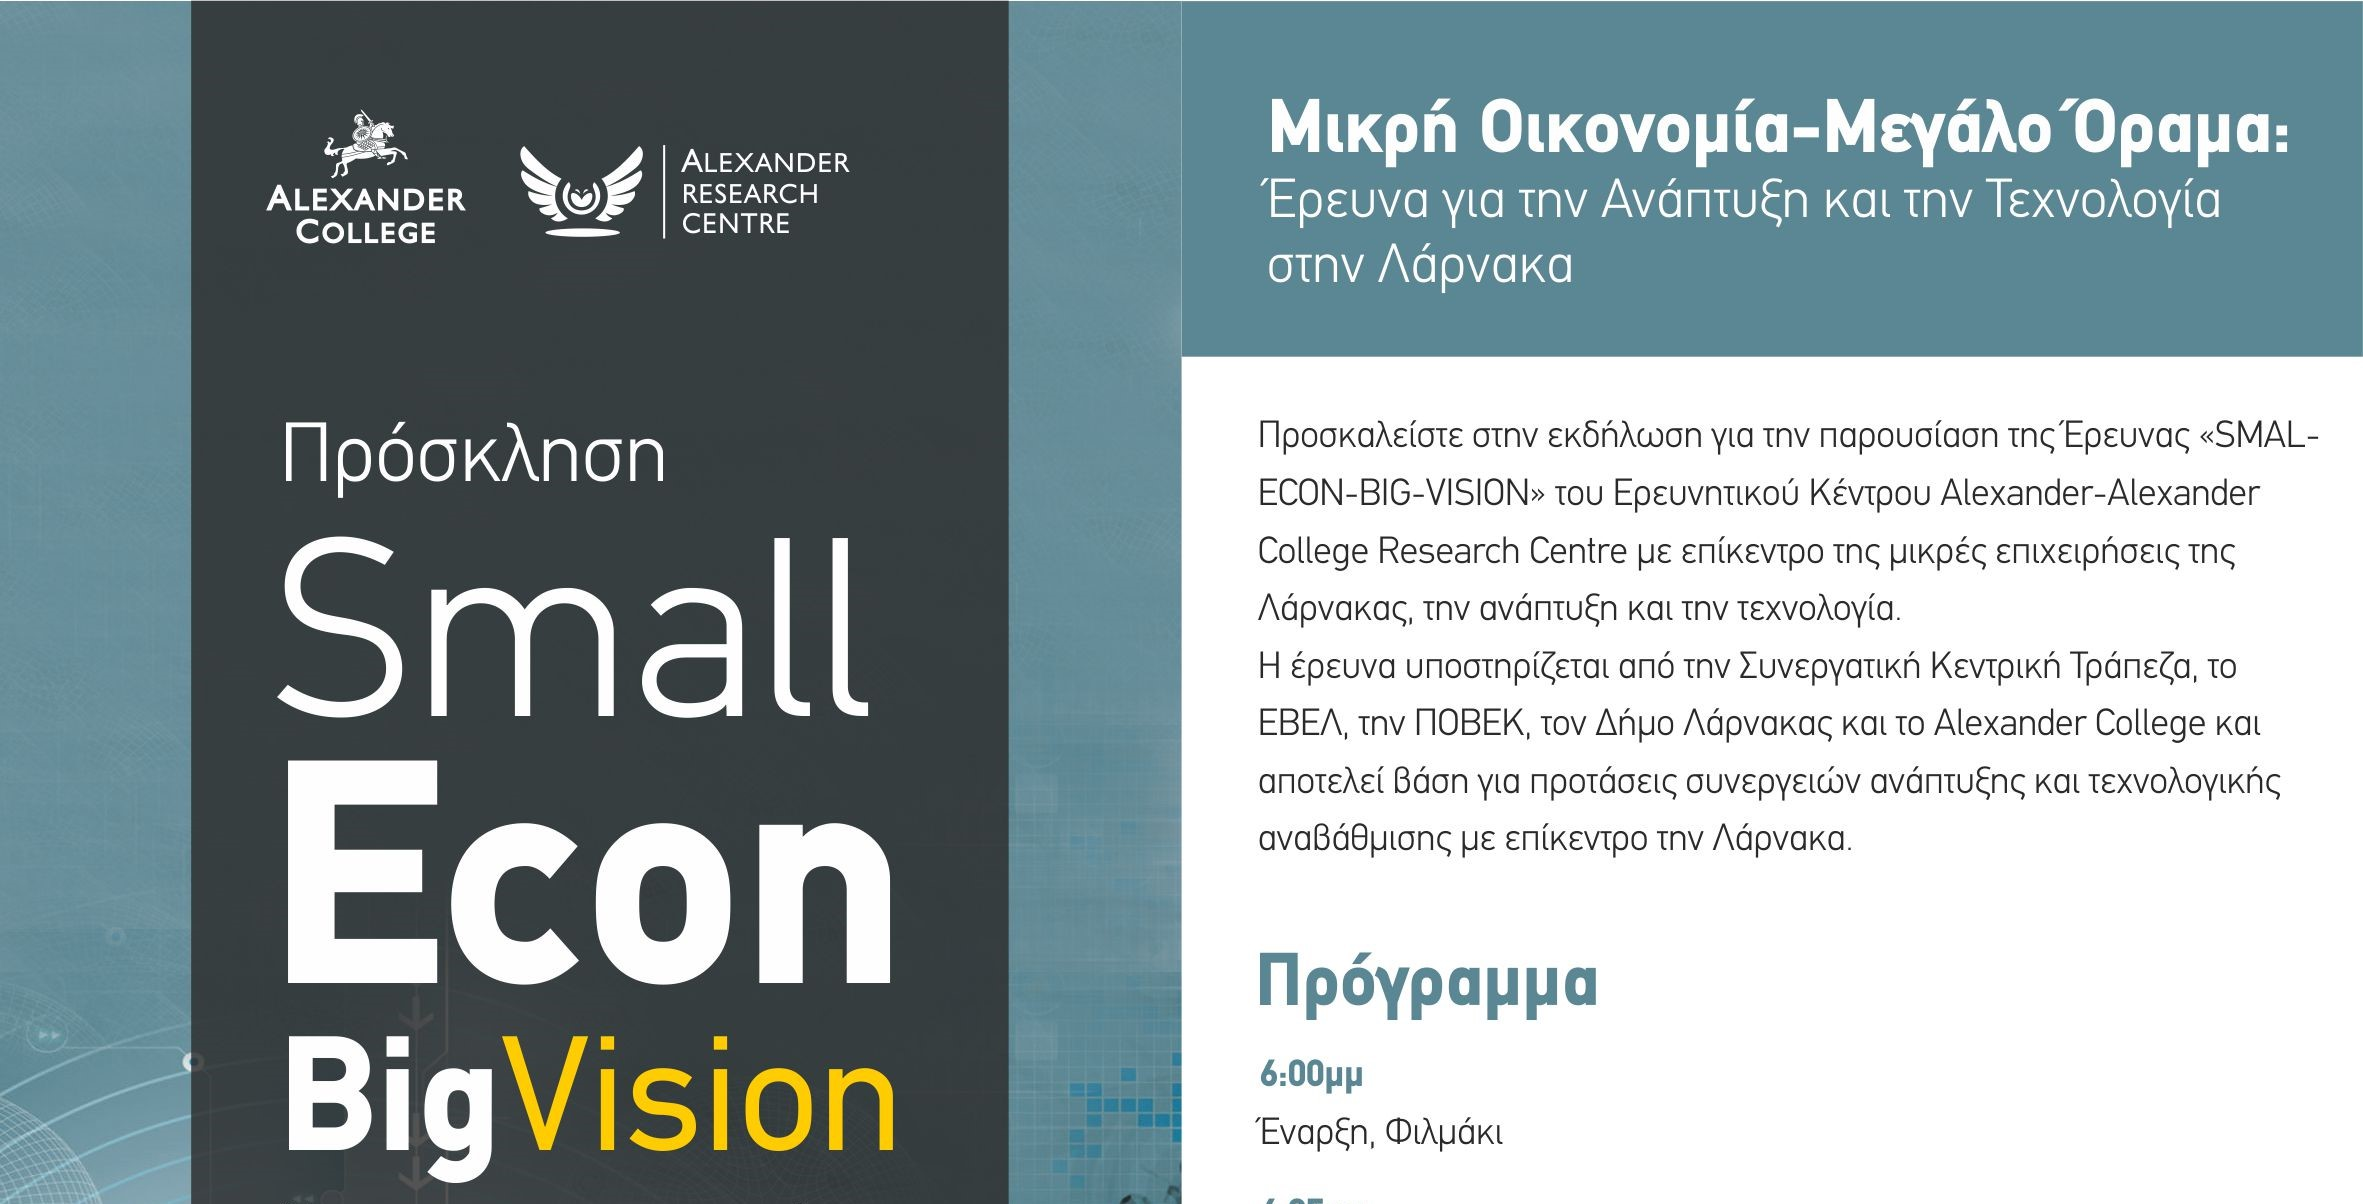 invitation-copy